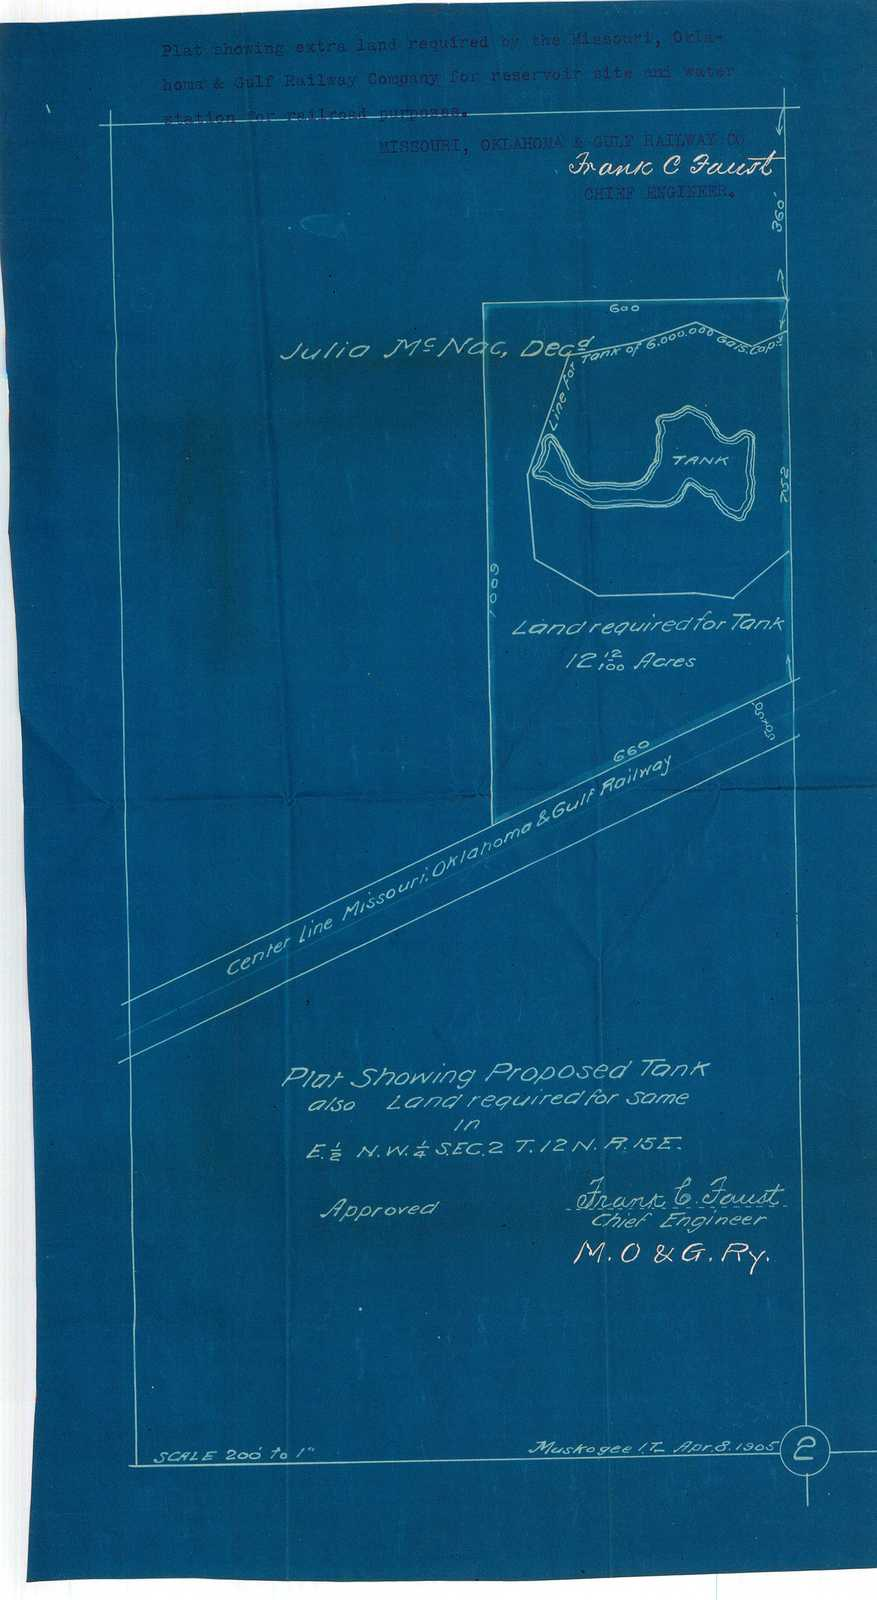 Plat Showing Proposed Tank also Land Required for Same in E 1/2 N.W. 1/4 Sec. 2 T. 12 N. R. 15 E.